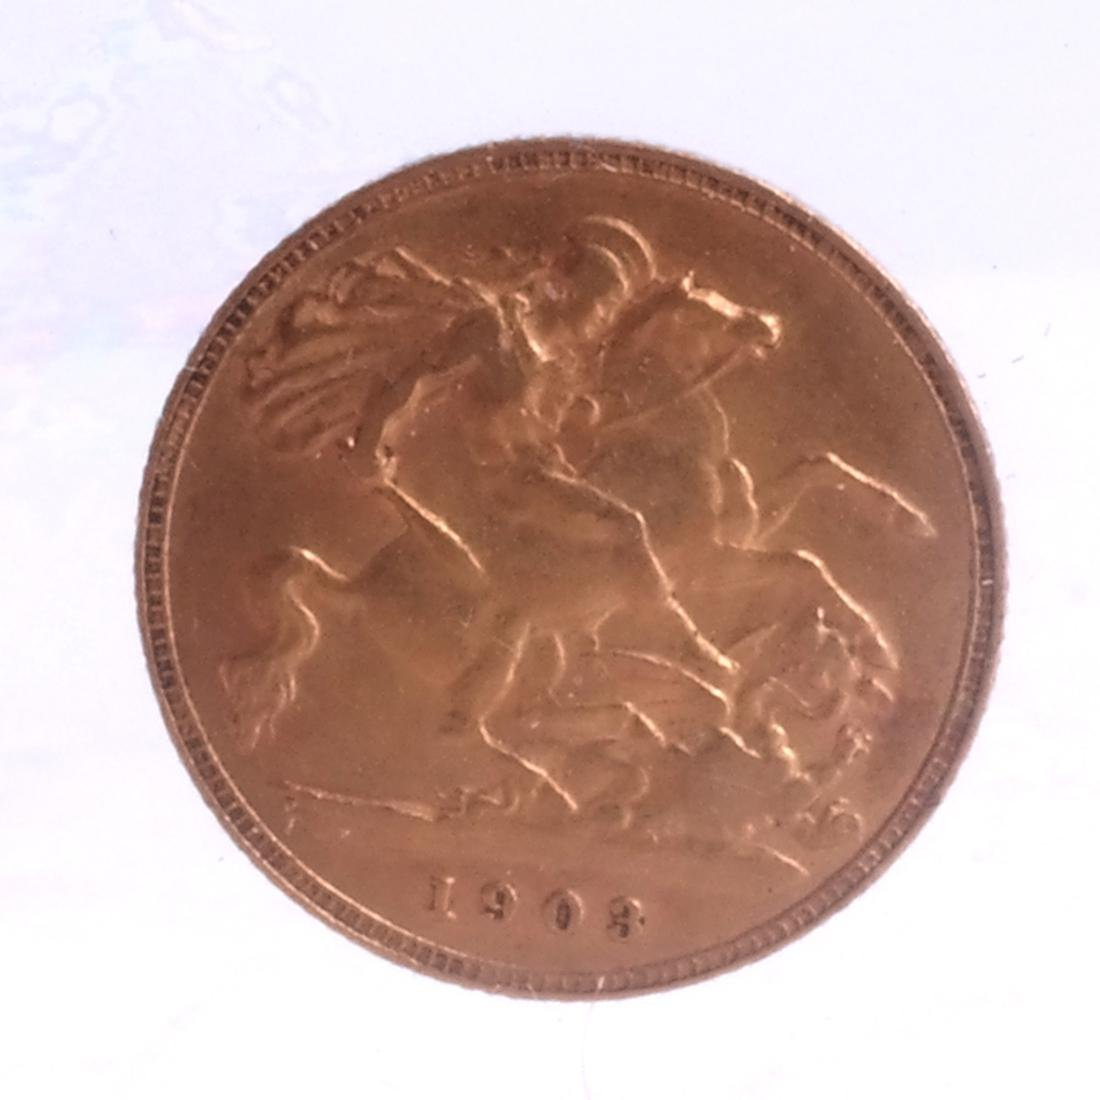 1902 Great Britain 1/2 Sovereign, Gold - 2